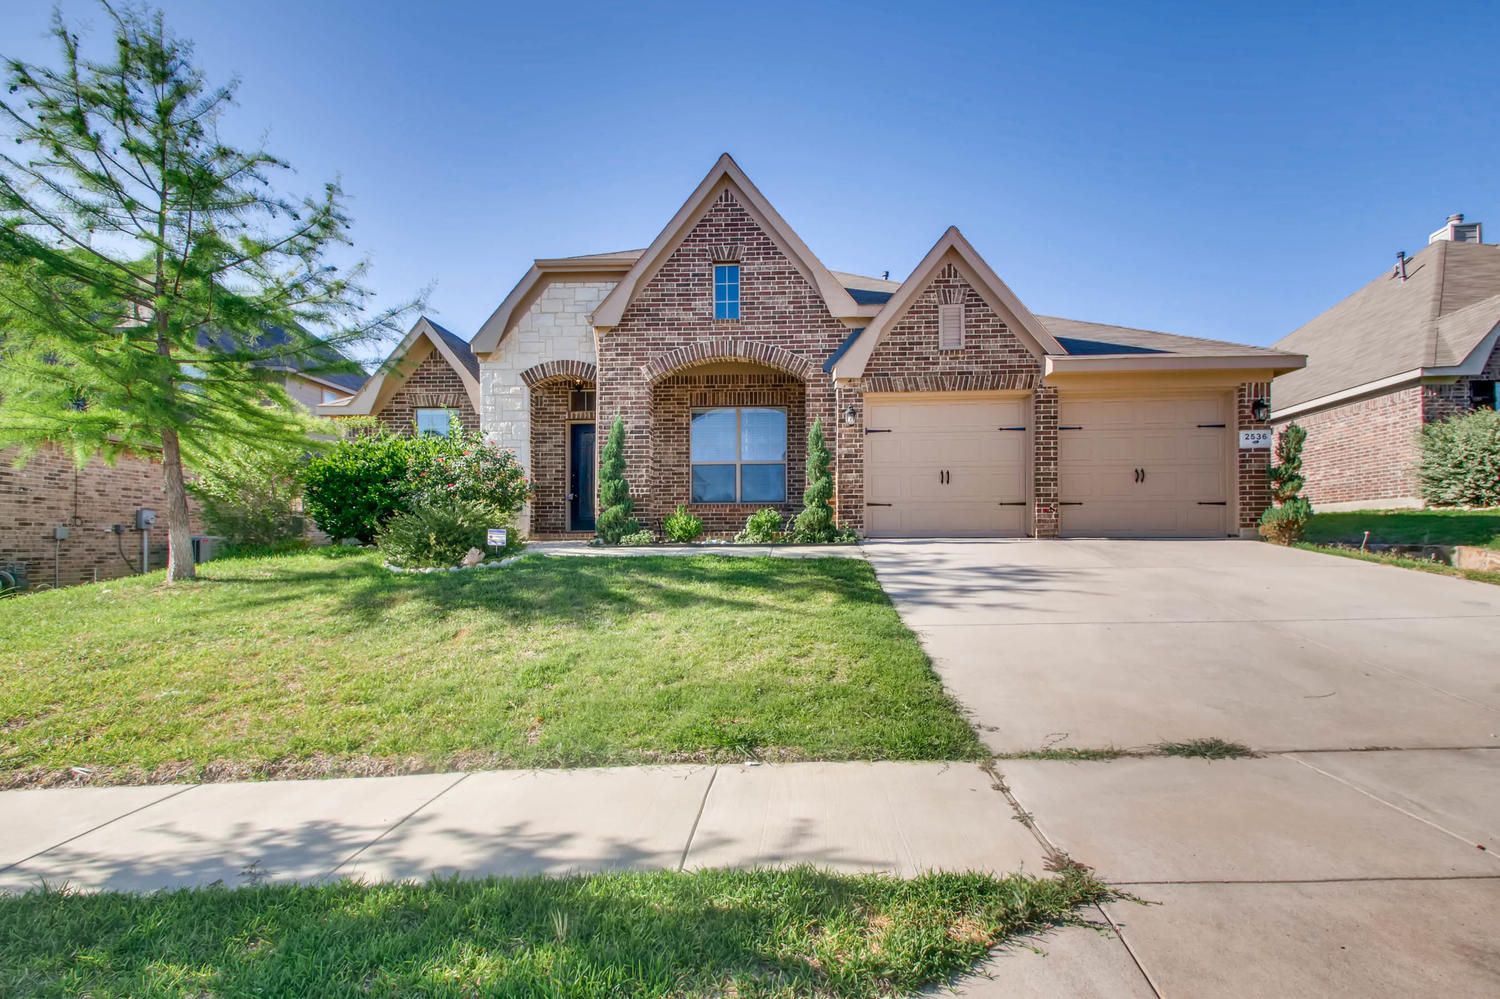 Photo of 2536 Boot Hill Ln, Fort Worth, TX, 76177